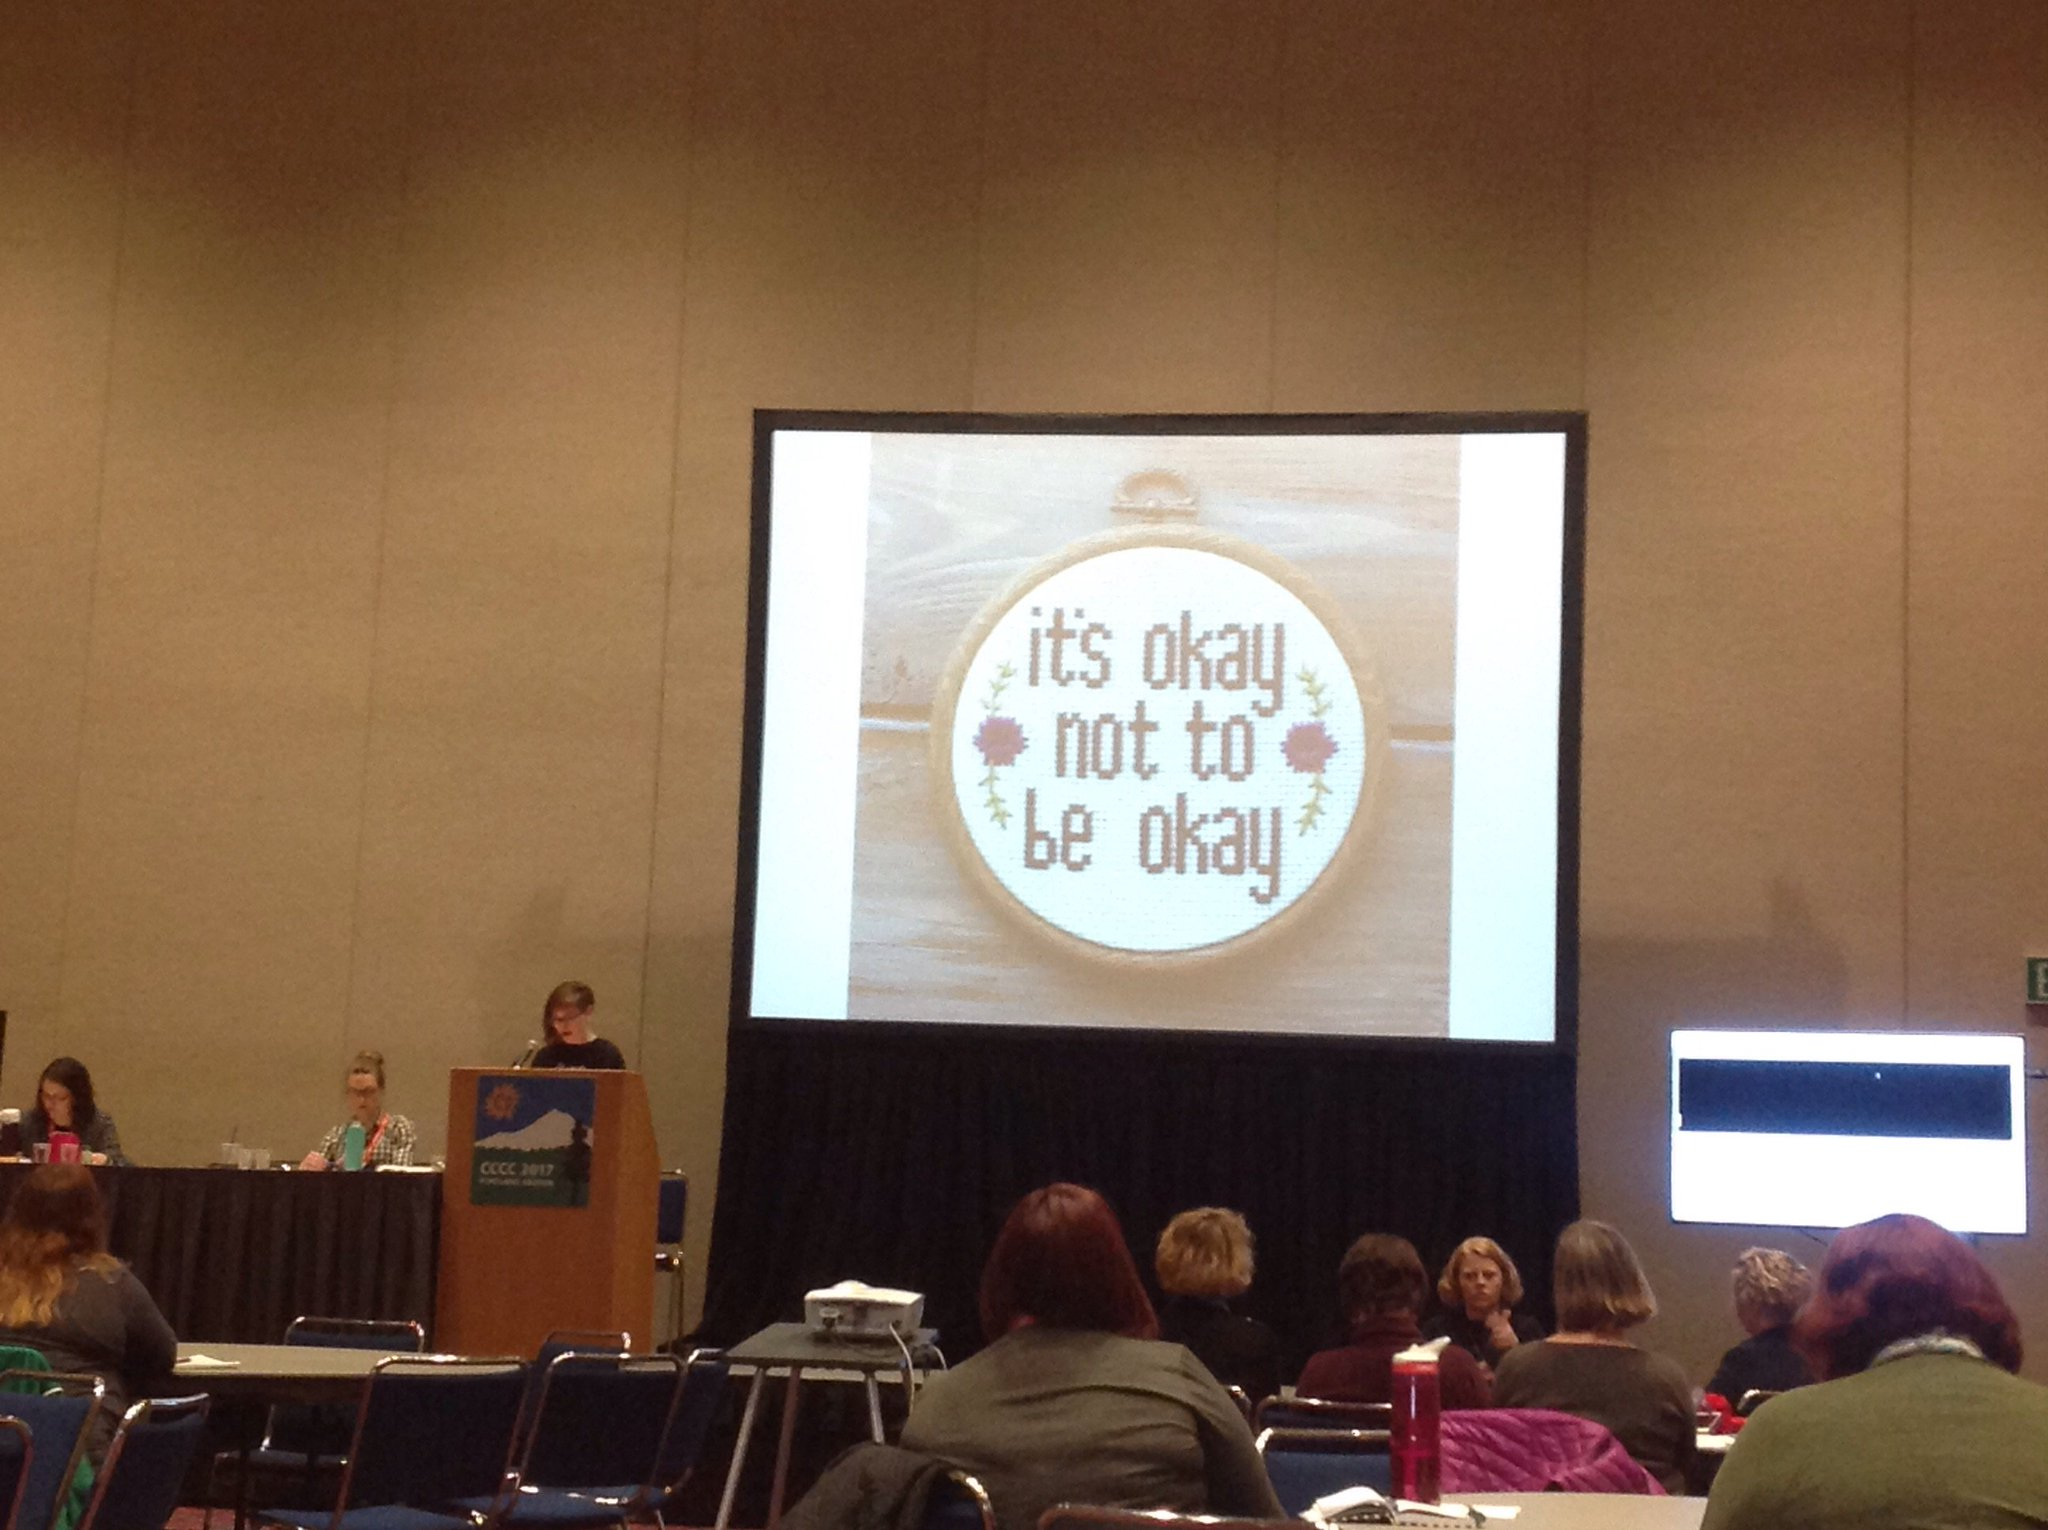 ".@ahhitt shares some cross-stitching that reads ""it's okay not to be okay""  #h5 #dis #4C17 https://t.co/iFsI6sbhsr"